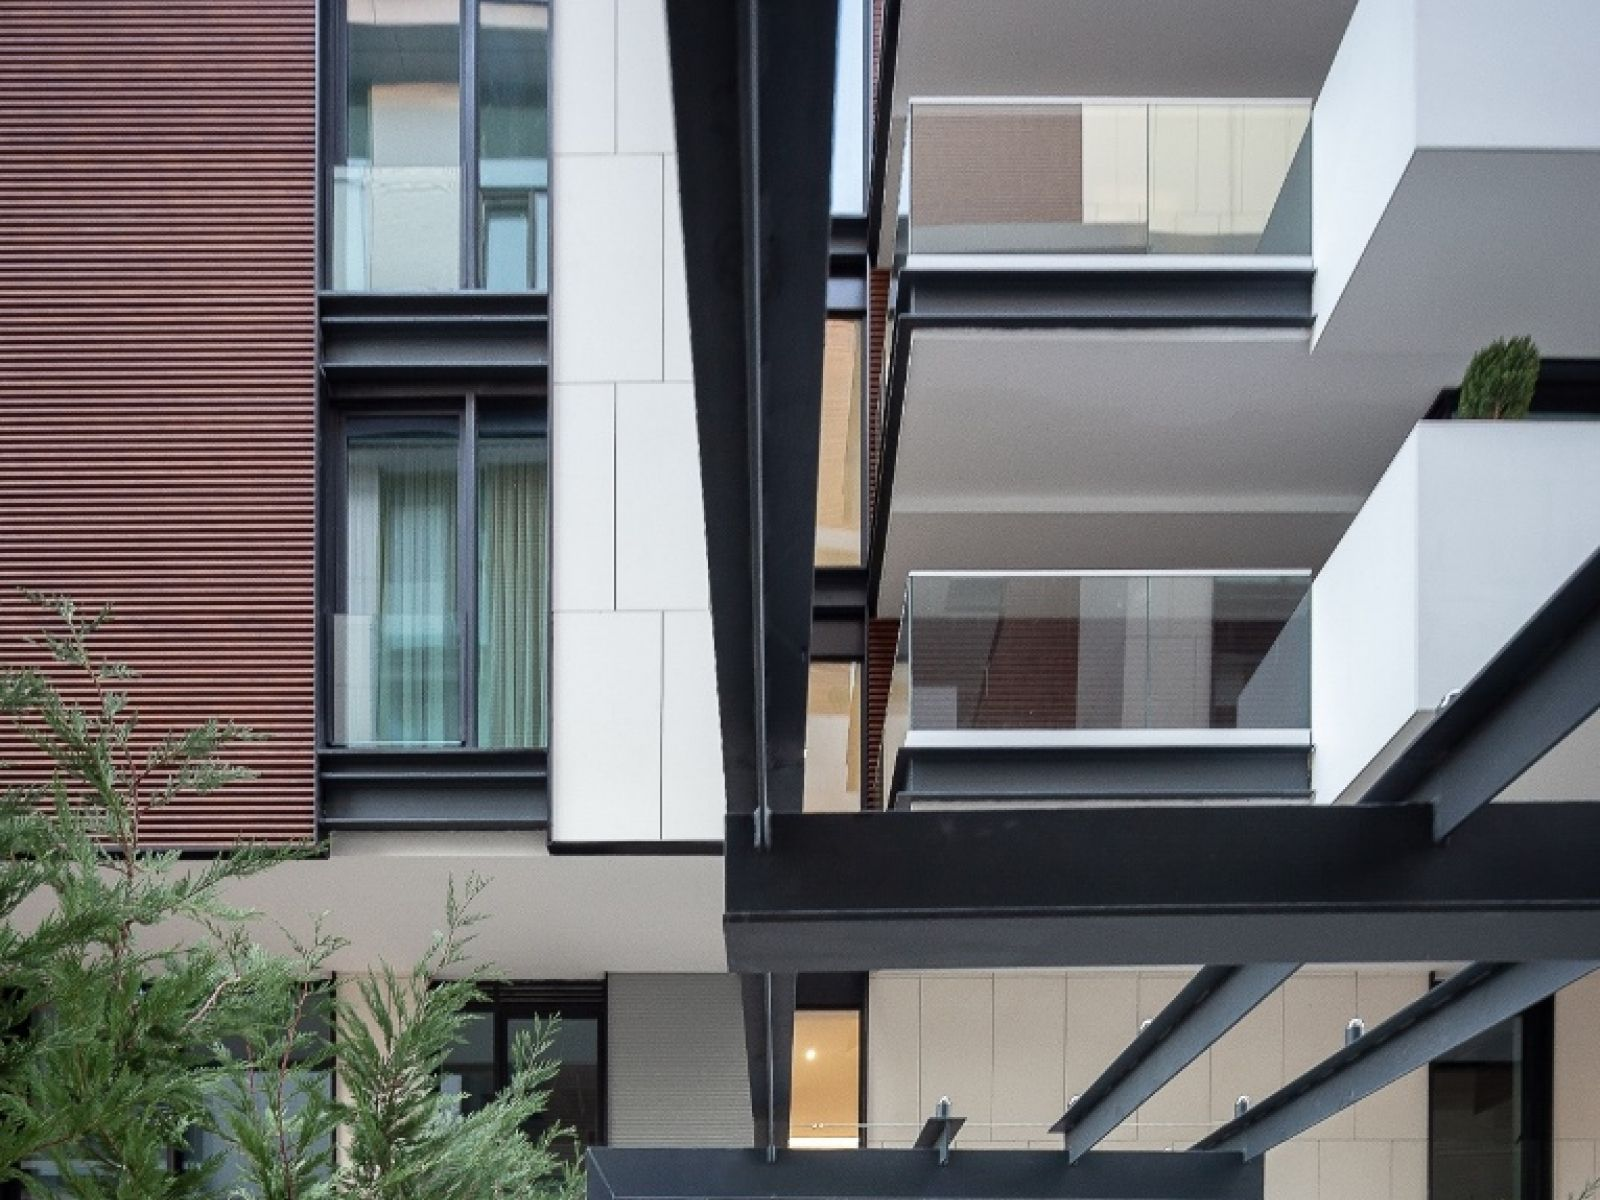 One Charles de Gaulle, the high-end residential development of 2018, featured extensively in Igloo magazine